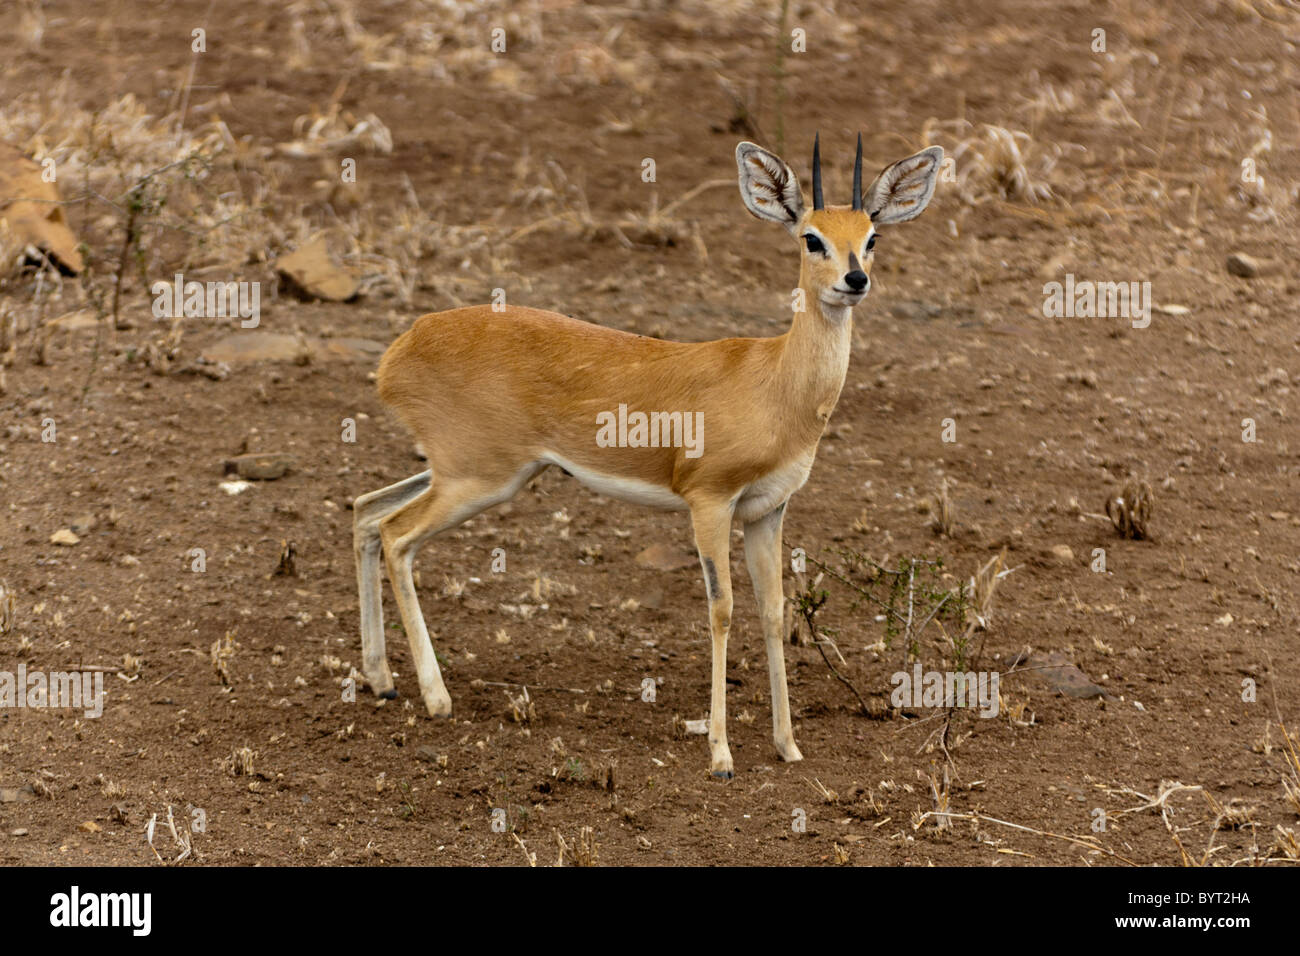 Le Céphalophe commun, l'antilope timide sauvage Photo Stock